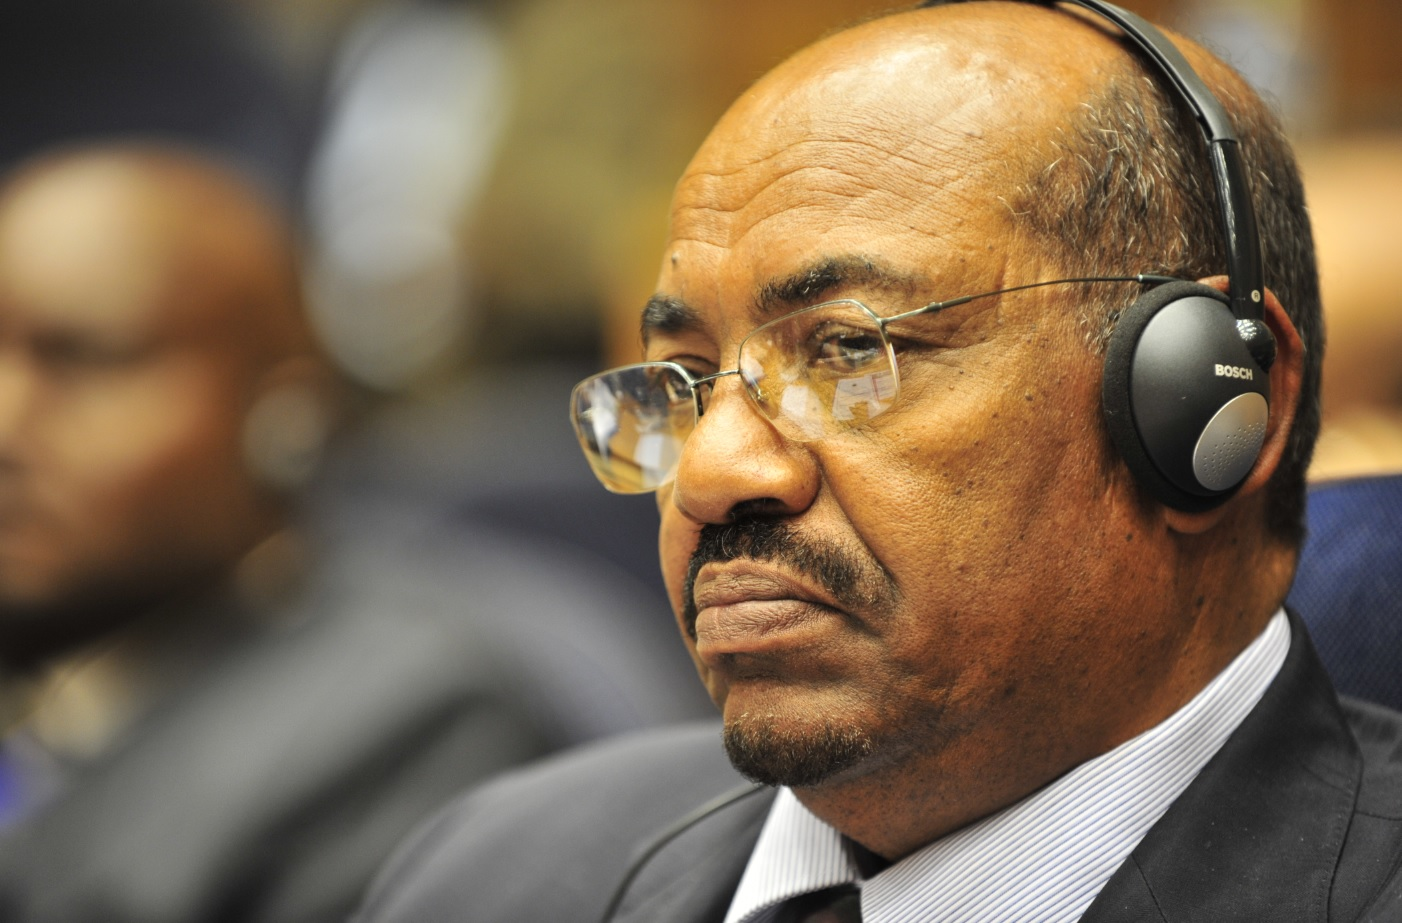 Darfuris rejoice as Sudan agrees to hand Bashir to ICC